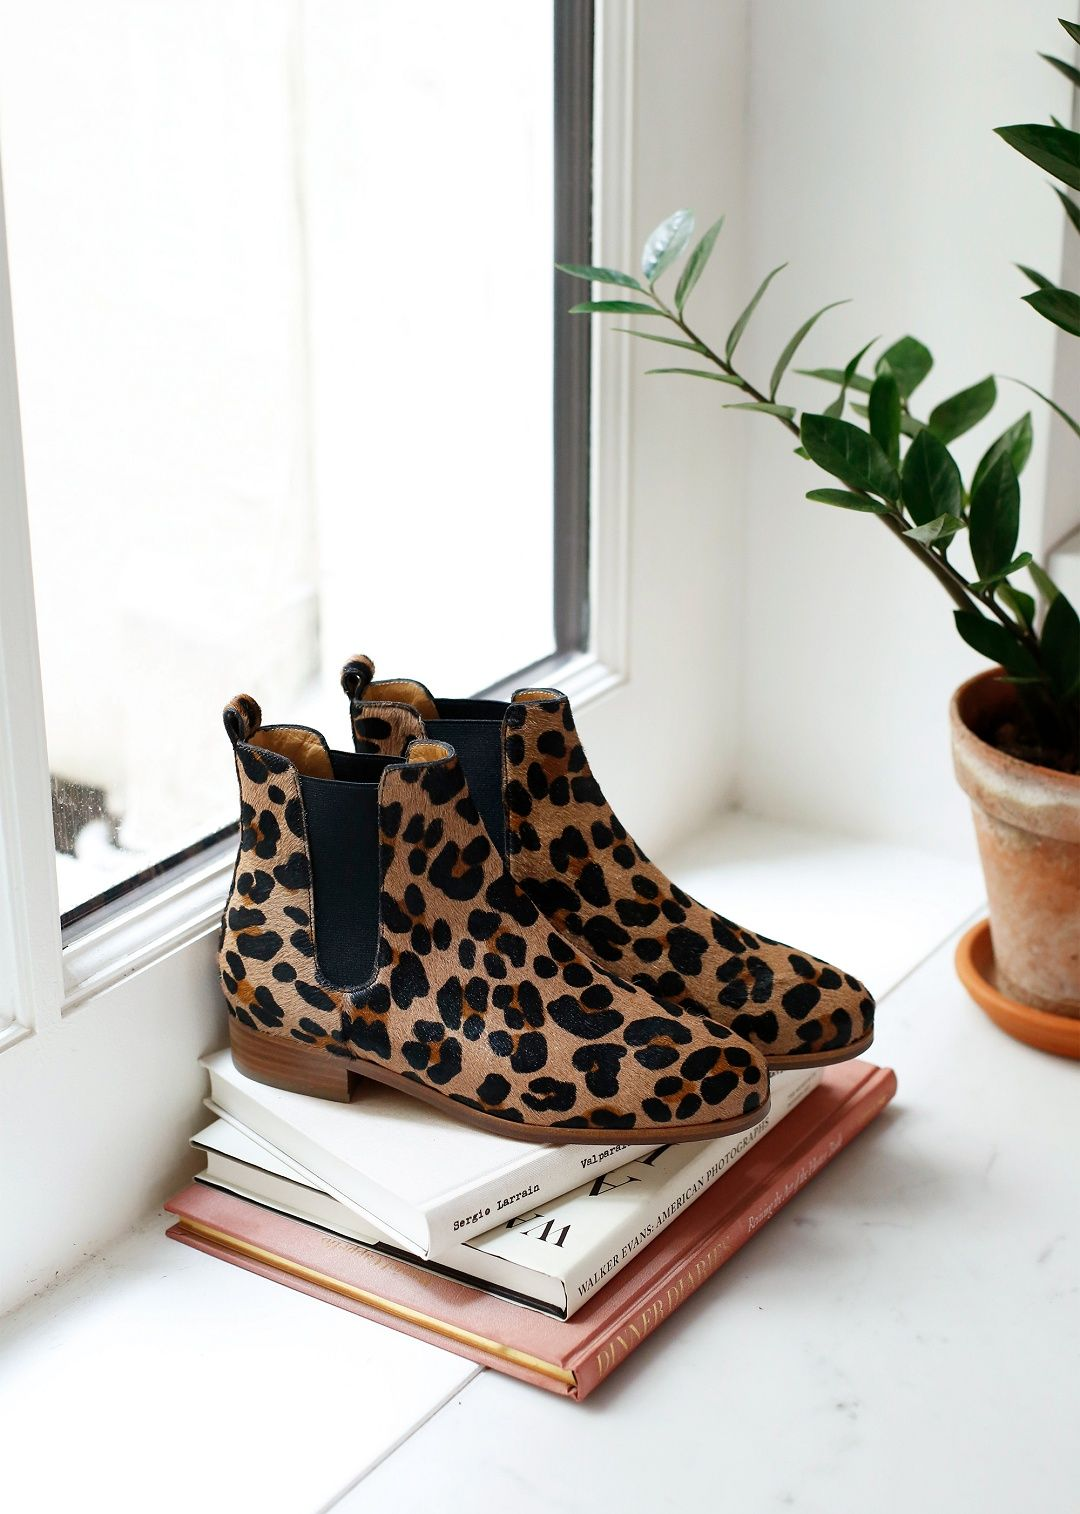 Sézane - Bottines Low Arthur   Chaussures   Pinterest 2b4aca0badf9